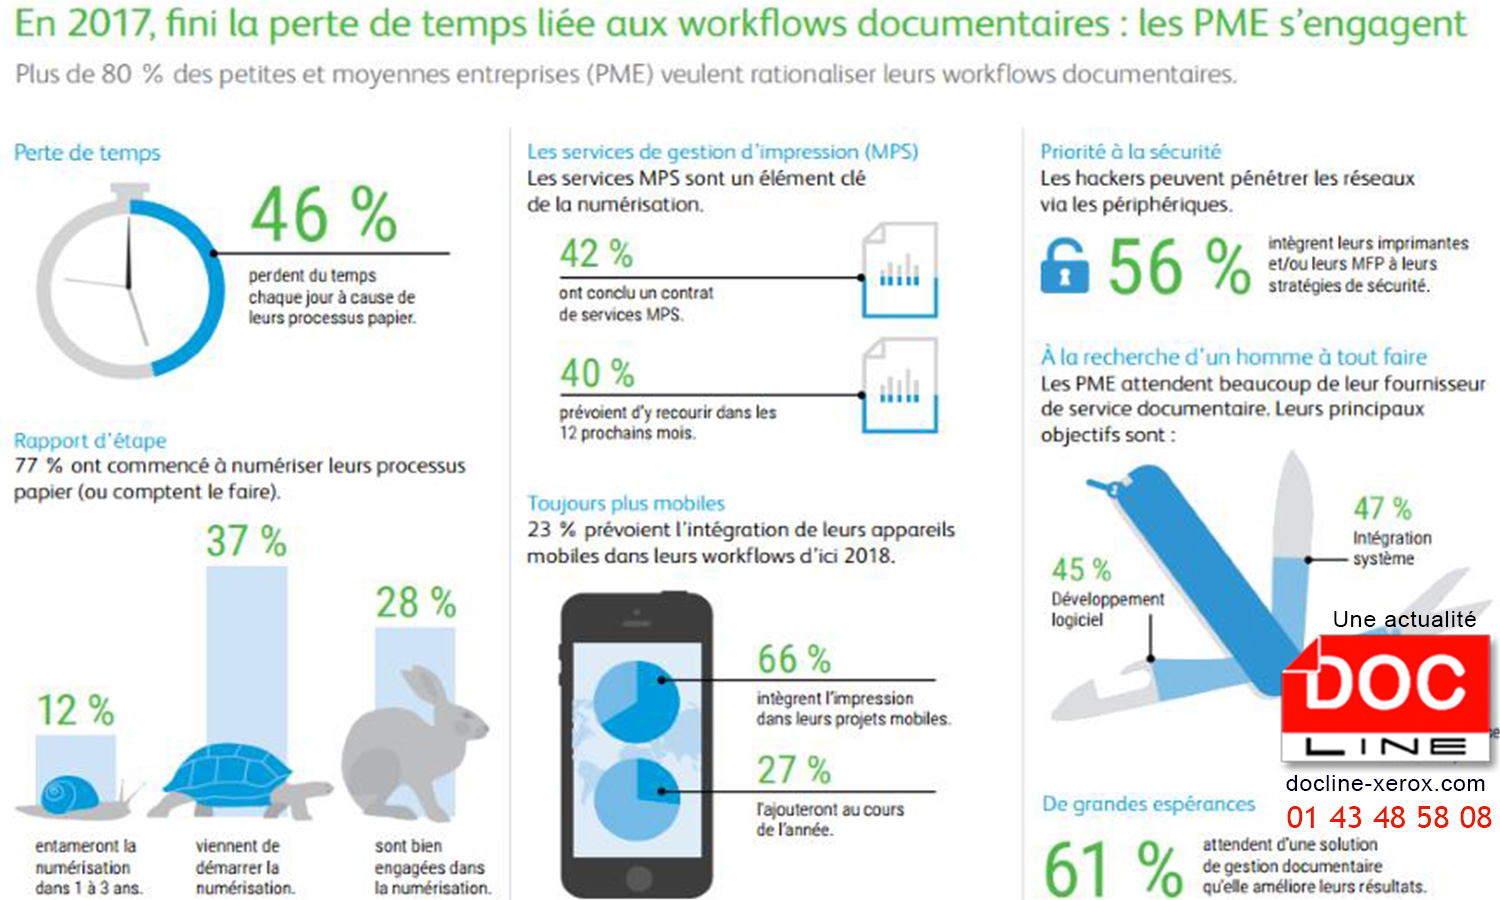 infographie-docline-xerox-workflows-documentaires-slider